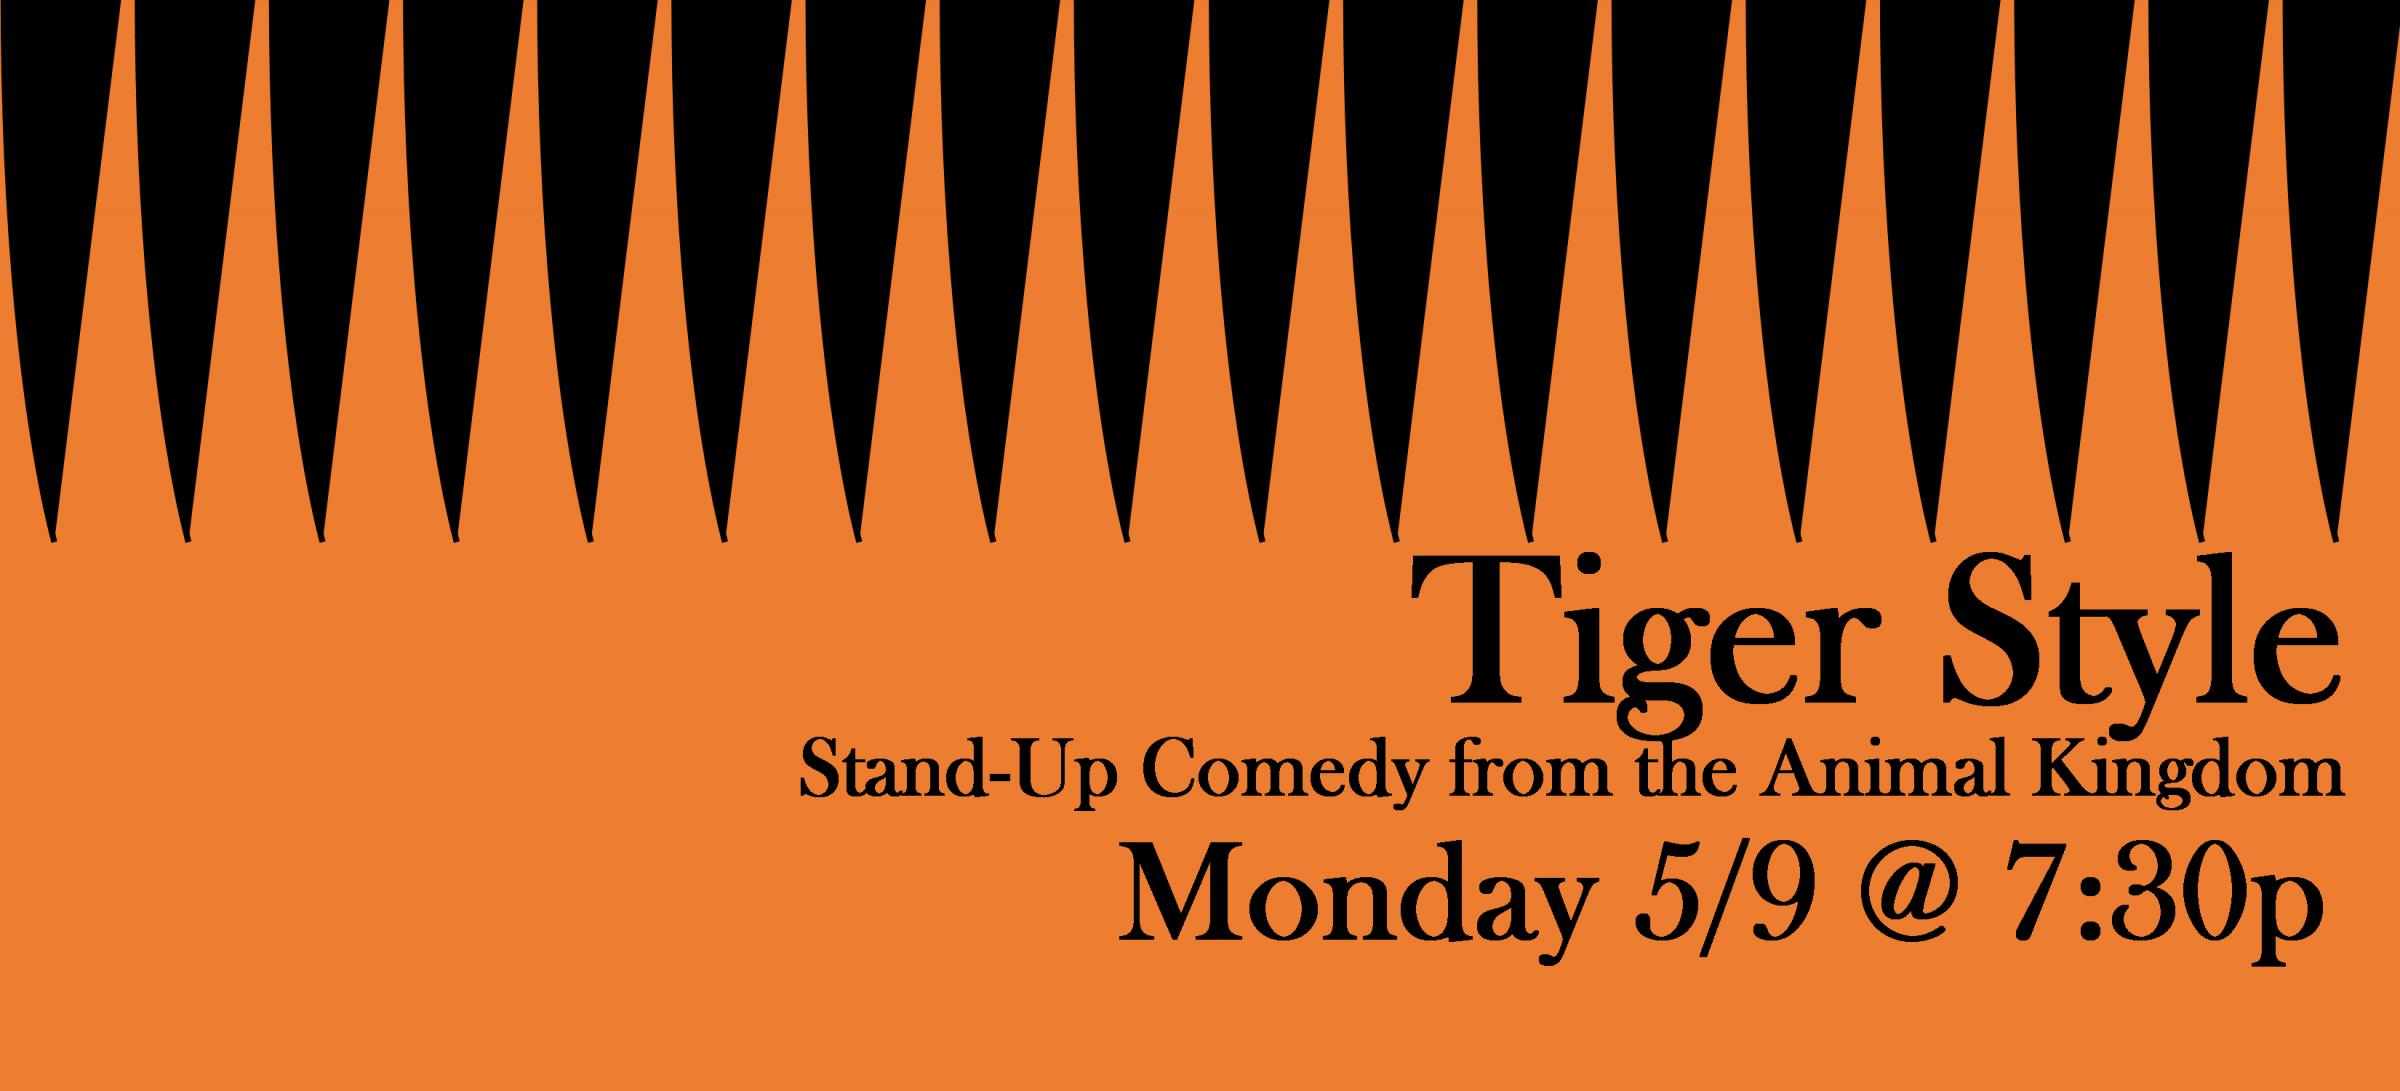 Tiger Style, Wild comedy from the Animal Kingdom.